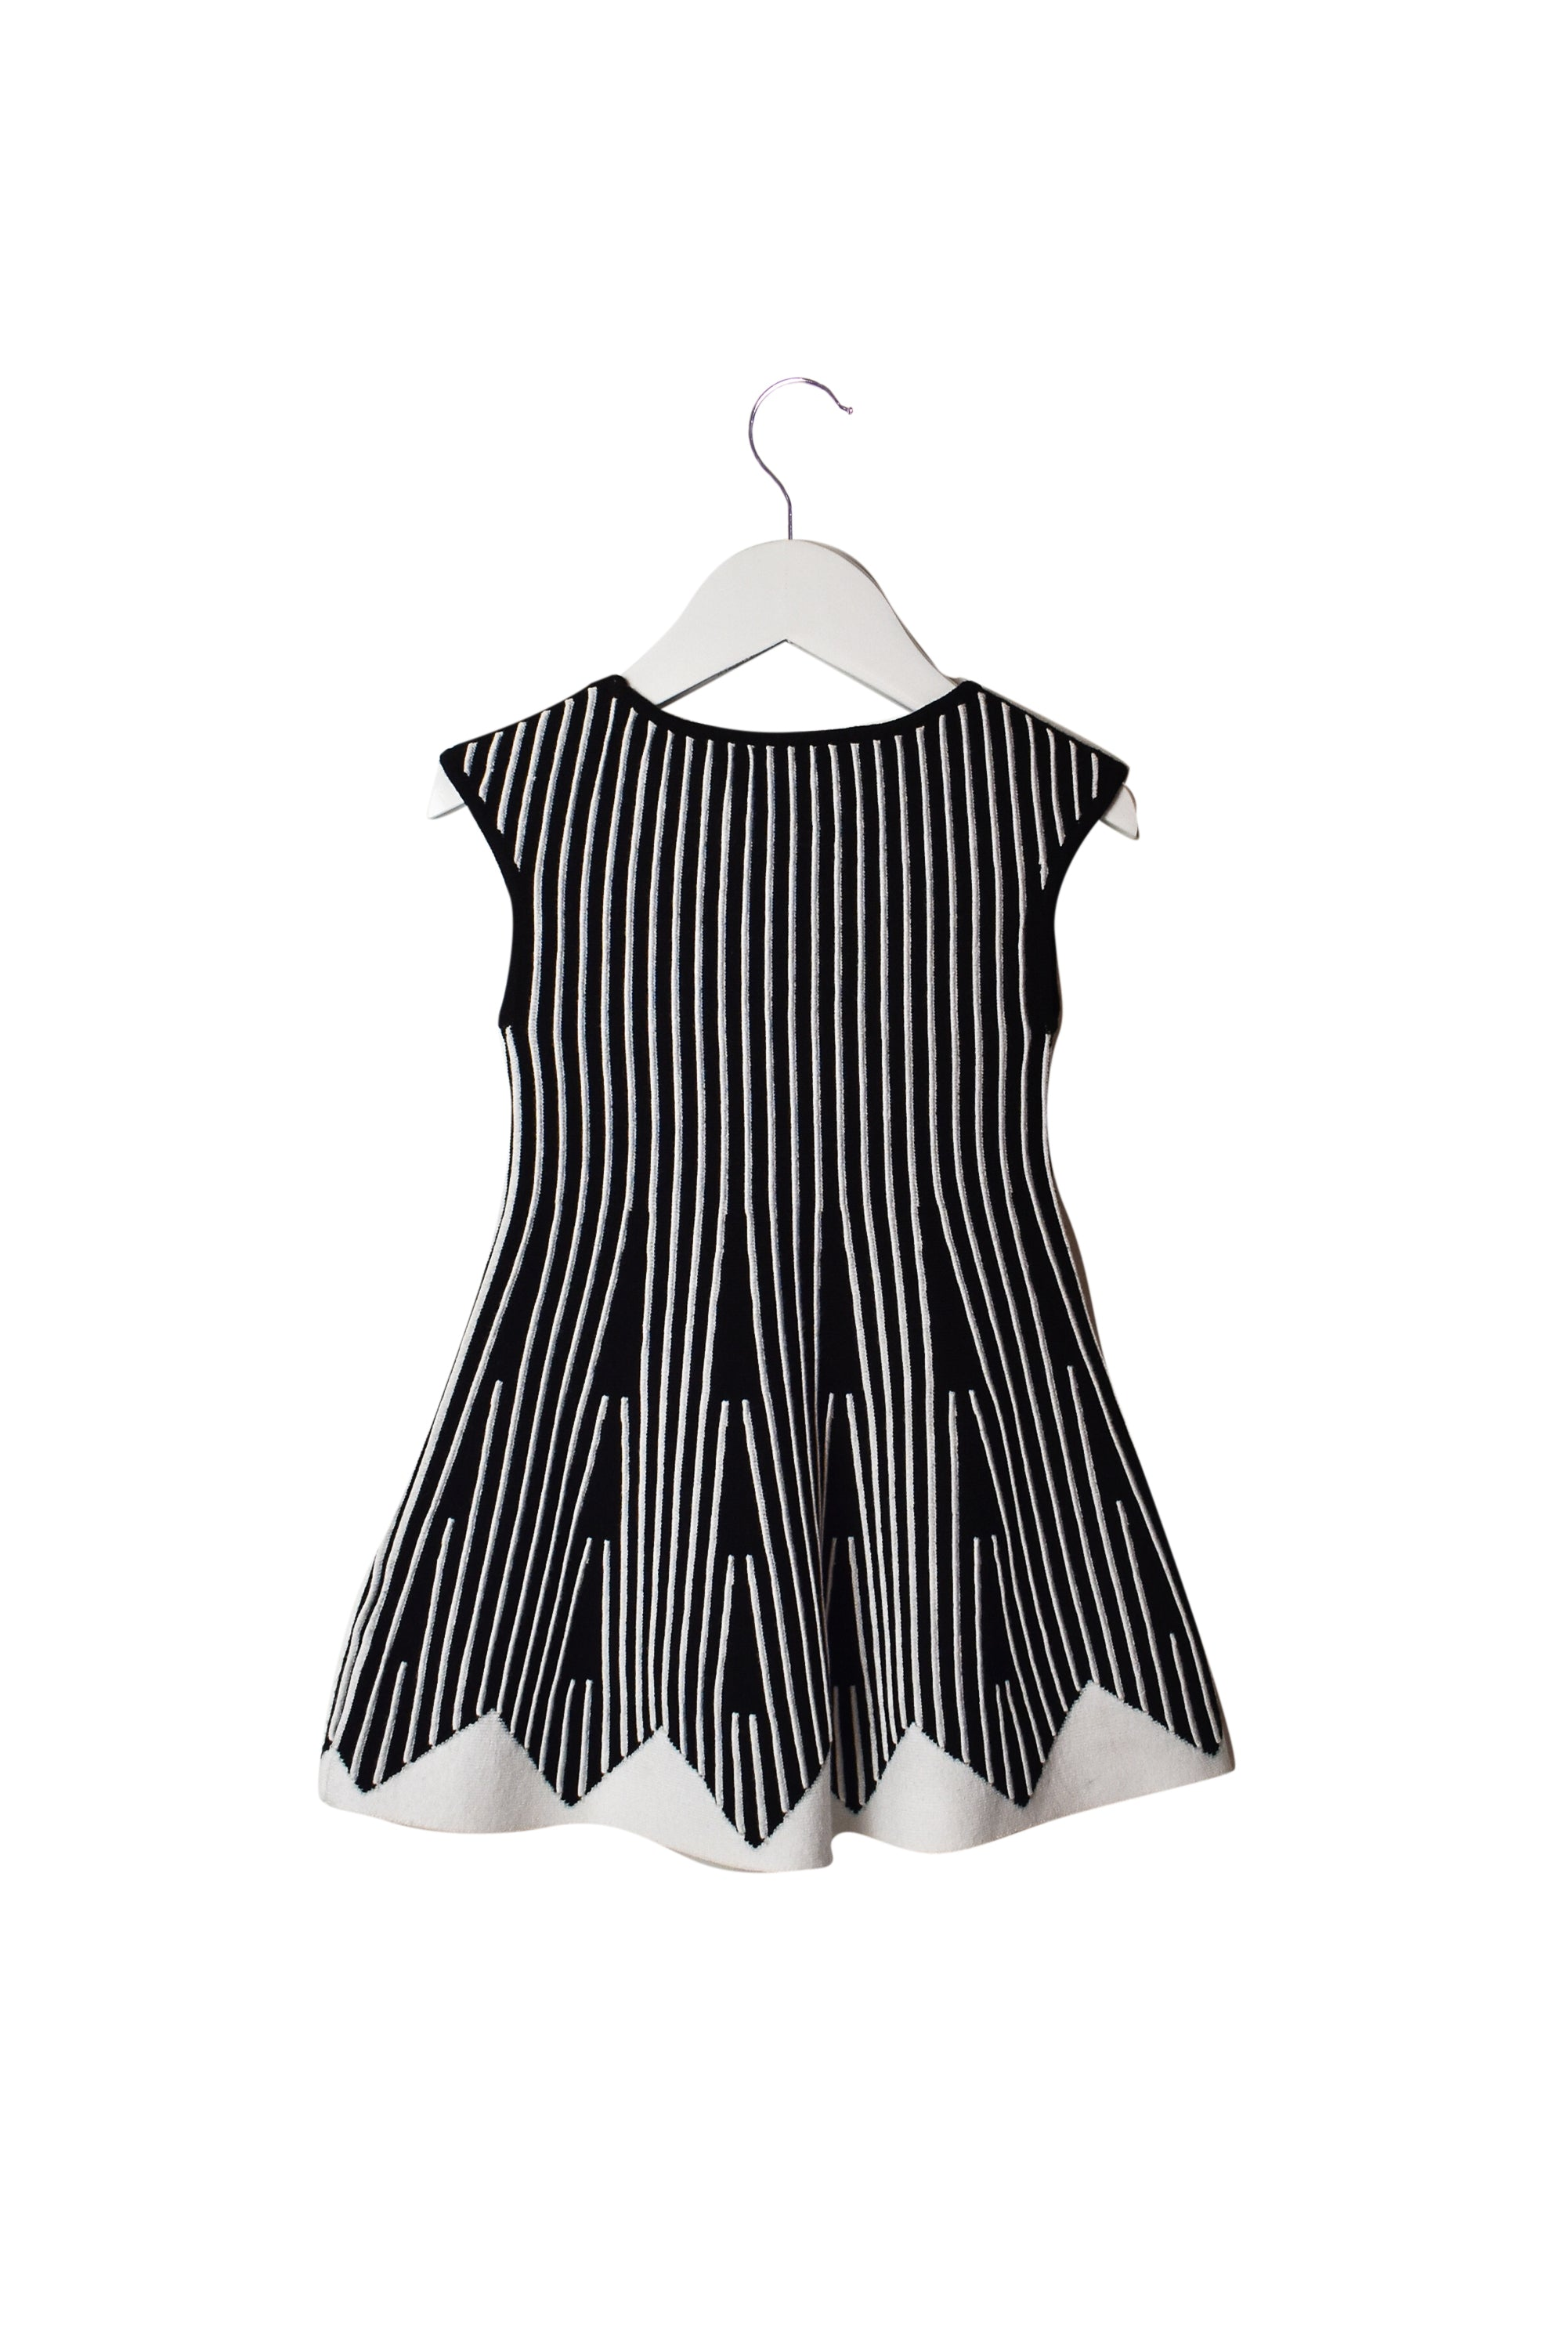 10007169 Milly Minis Kids~ Dress 2T at Retykle